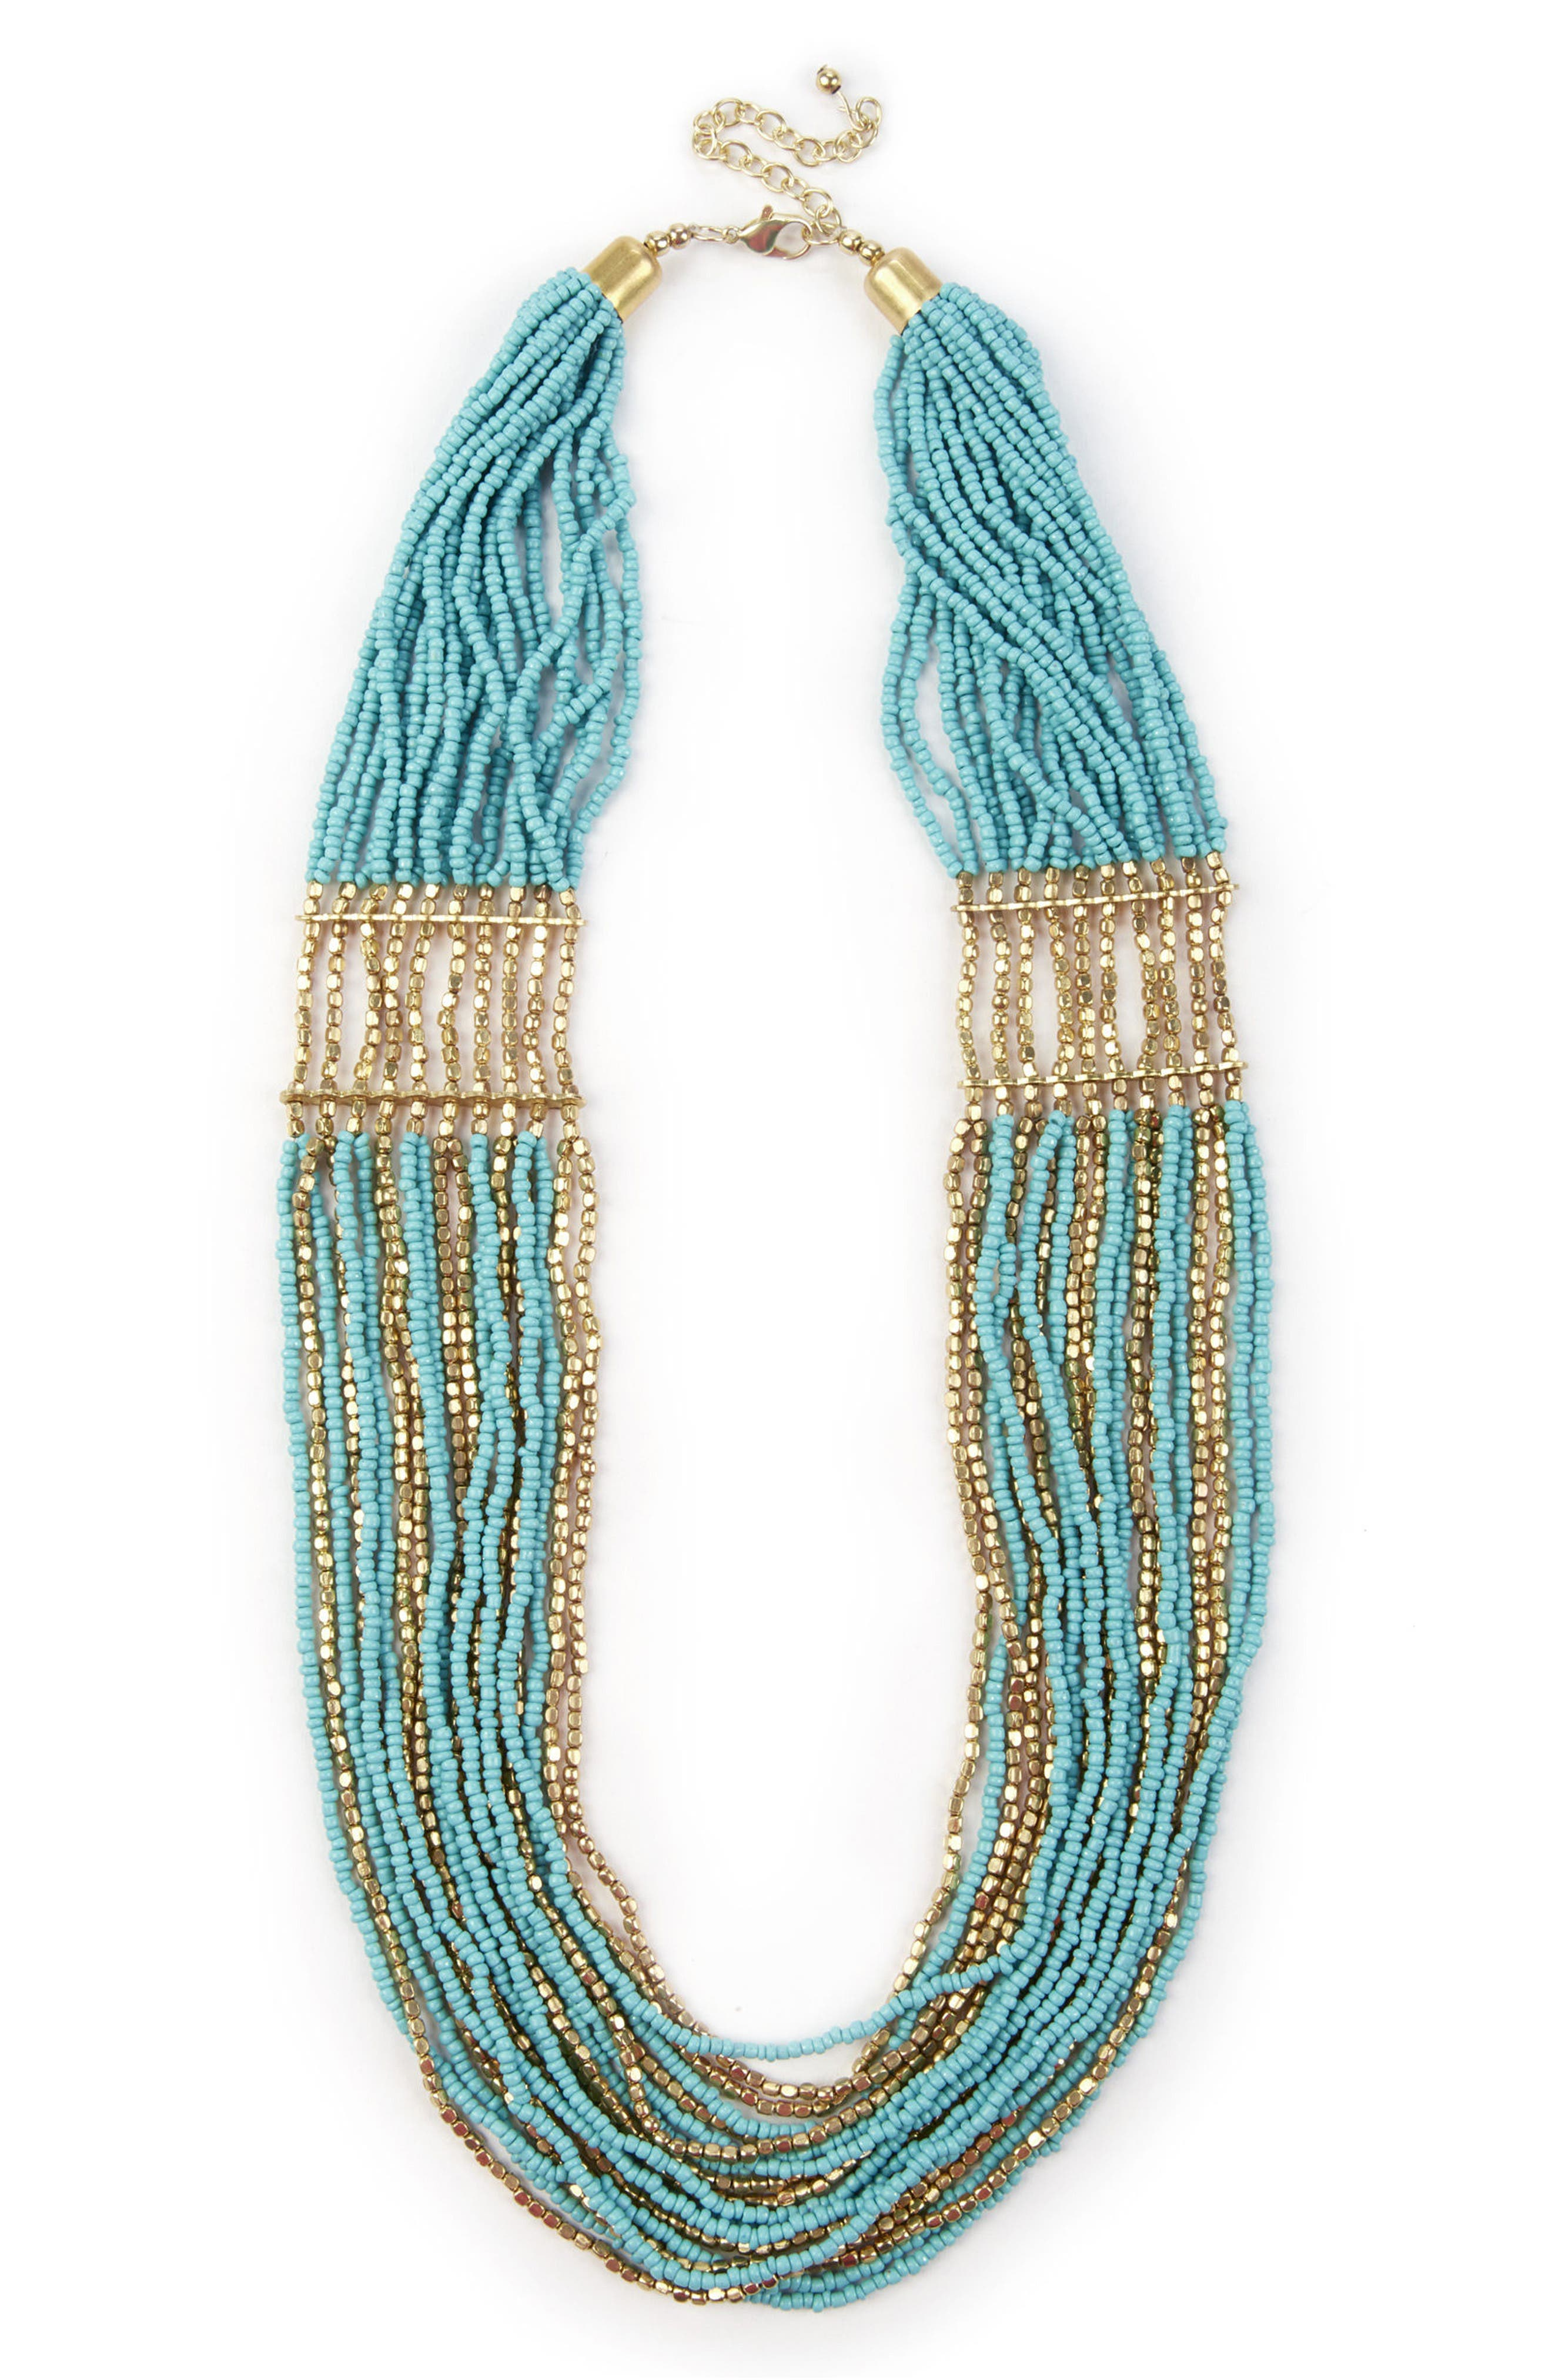 Multistrand Beaded Necklace,                             Main thumbnail 1, color,                             Teal Combo